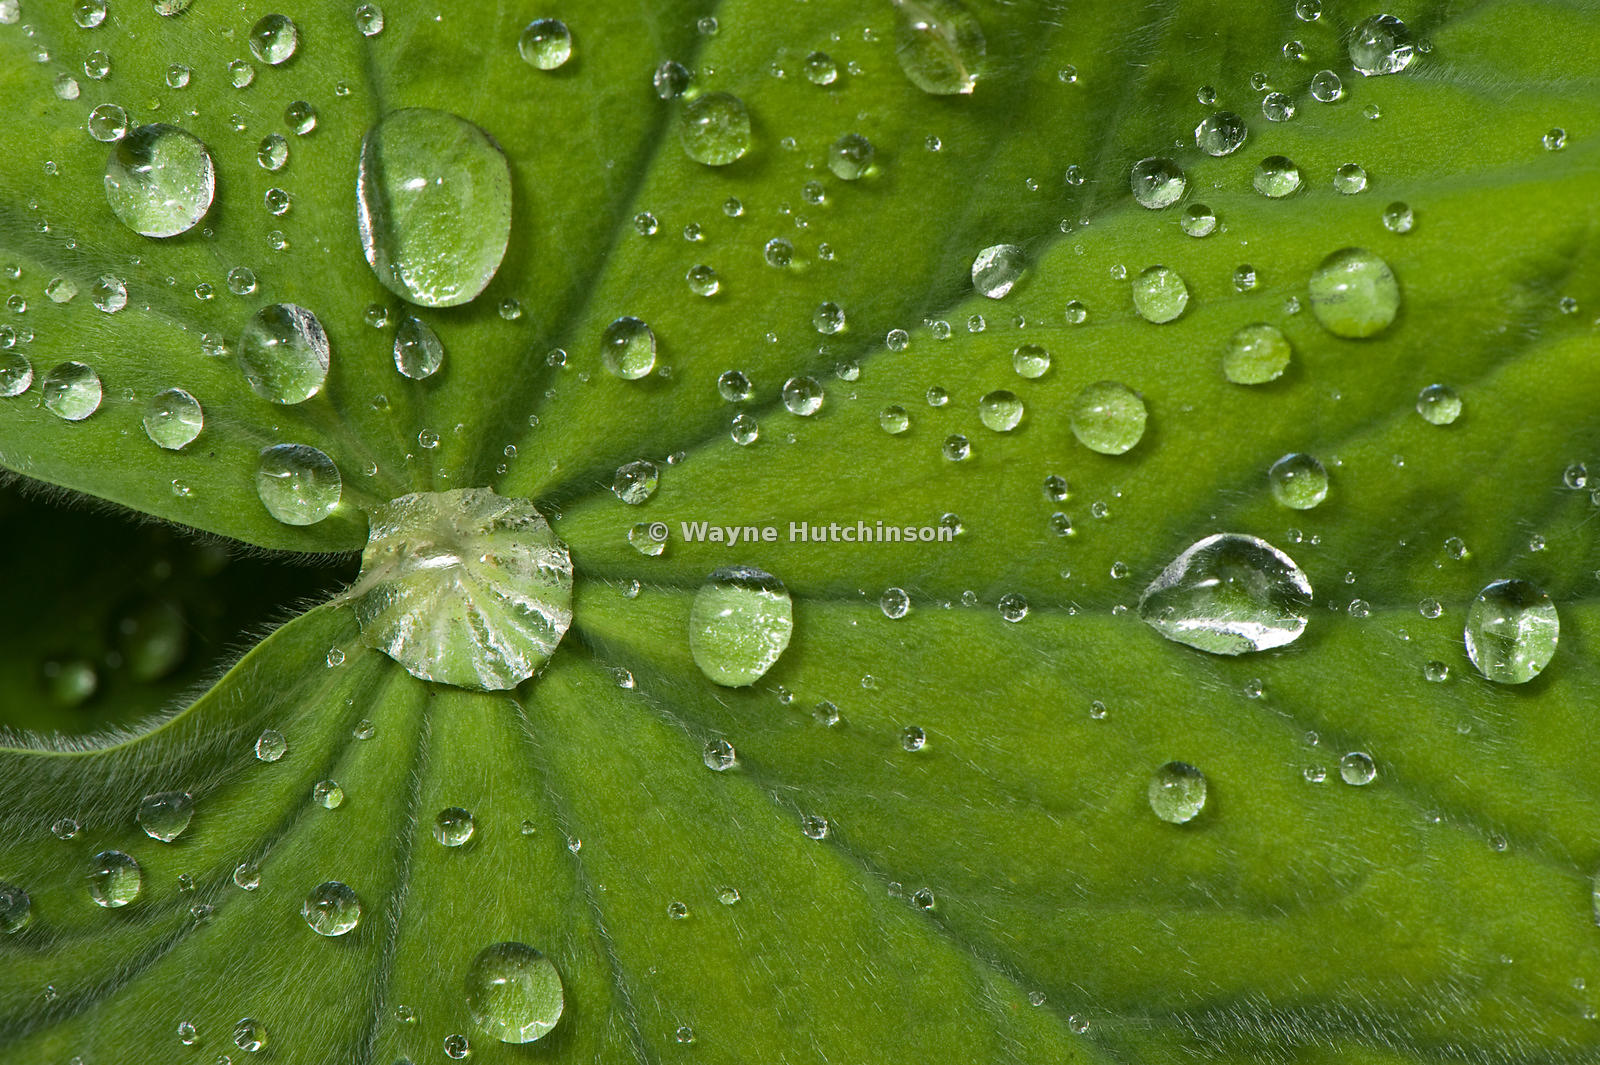 Water droplets on a plant leaf